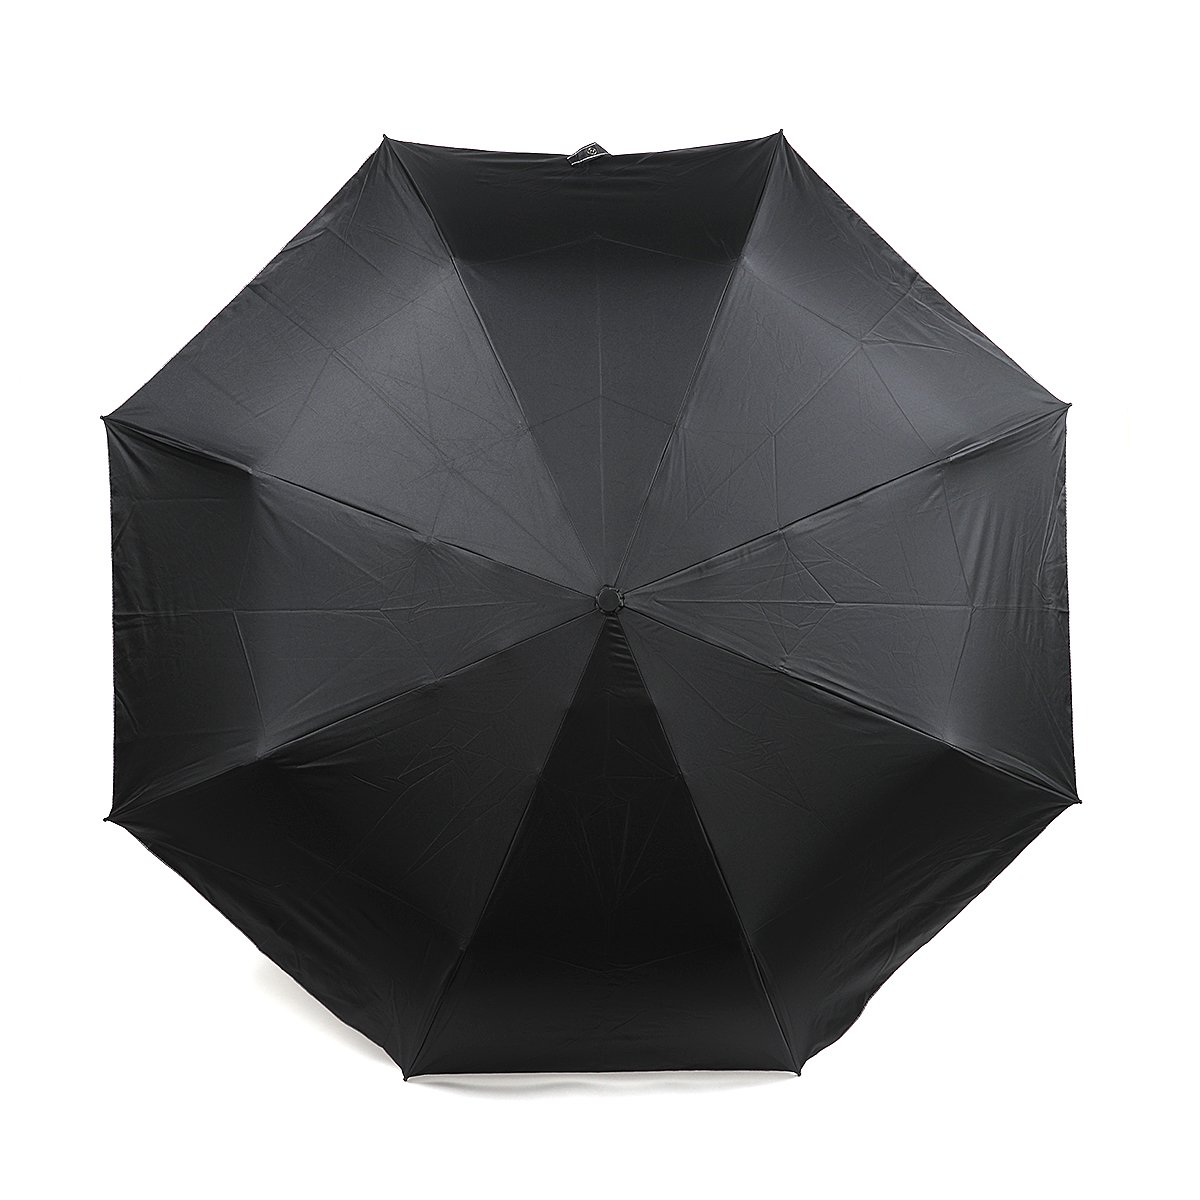 608K UV FOLDING UMBRELLA 詳細画像2